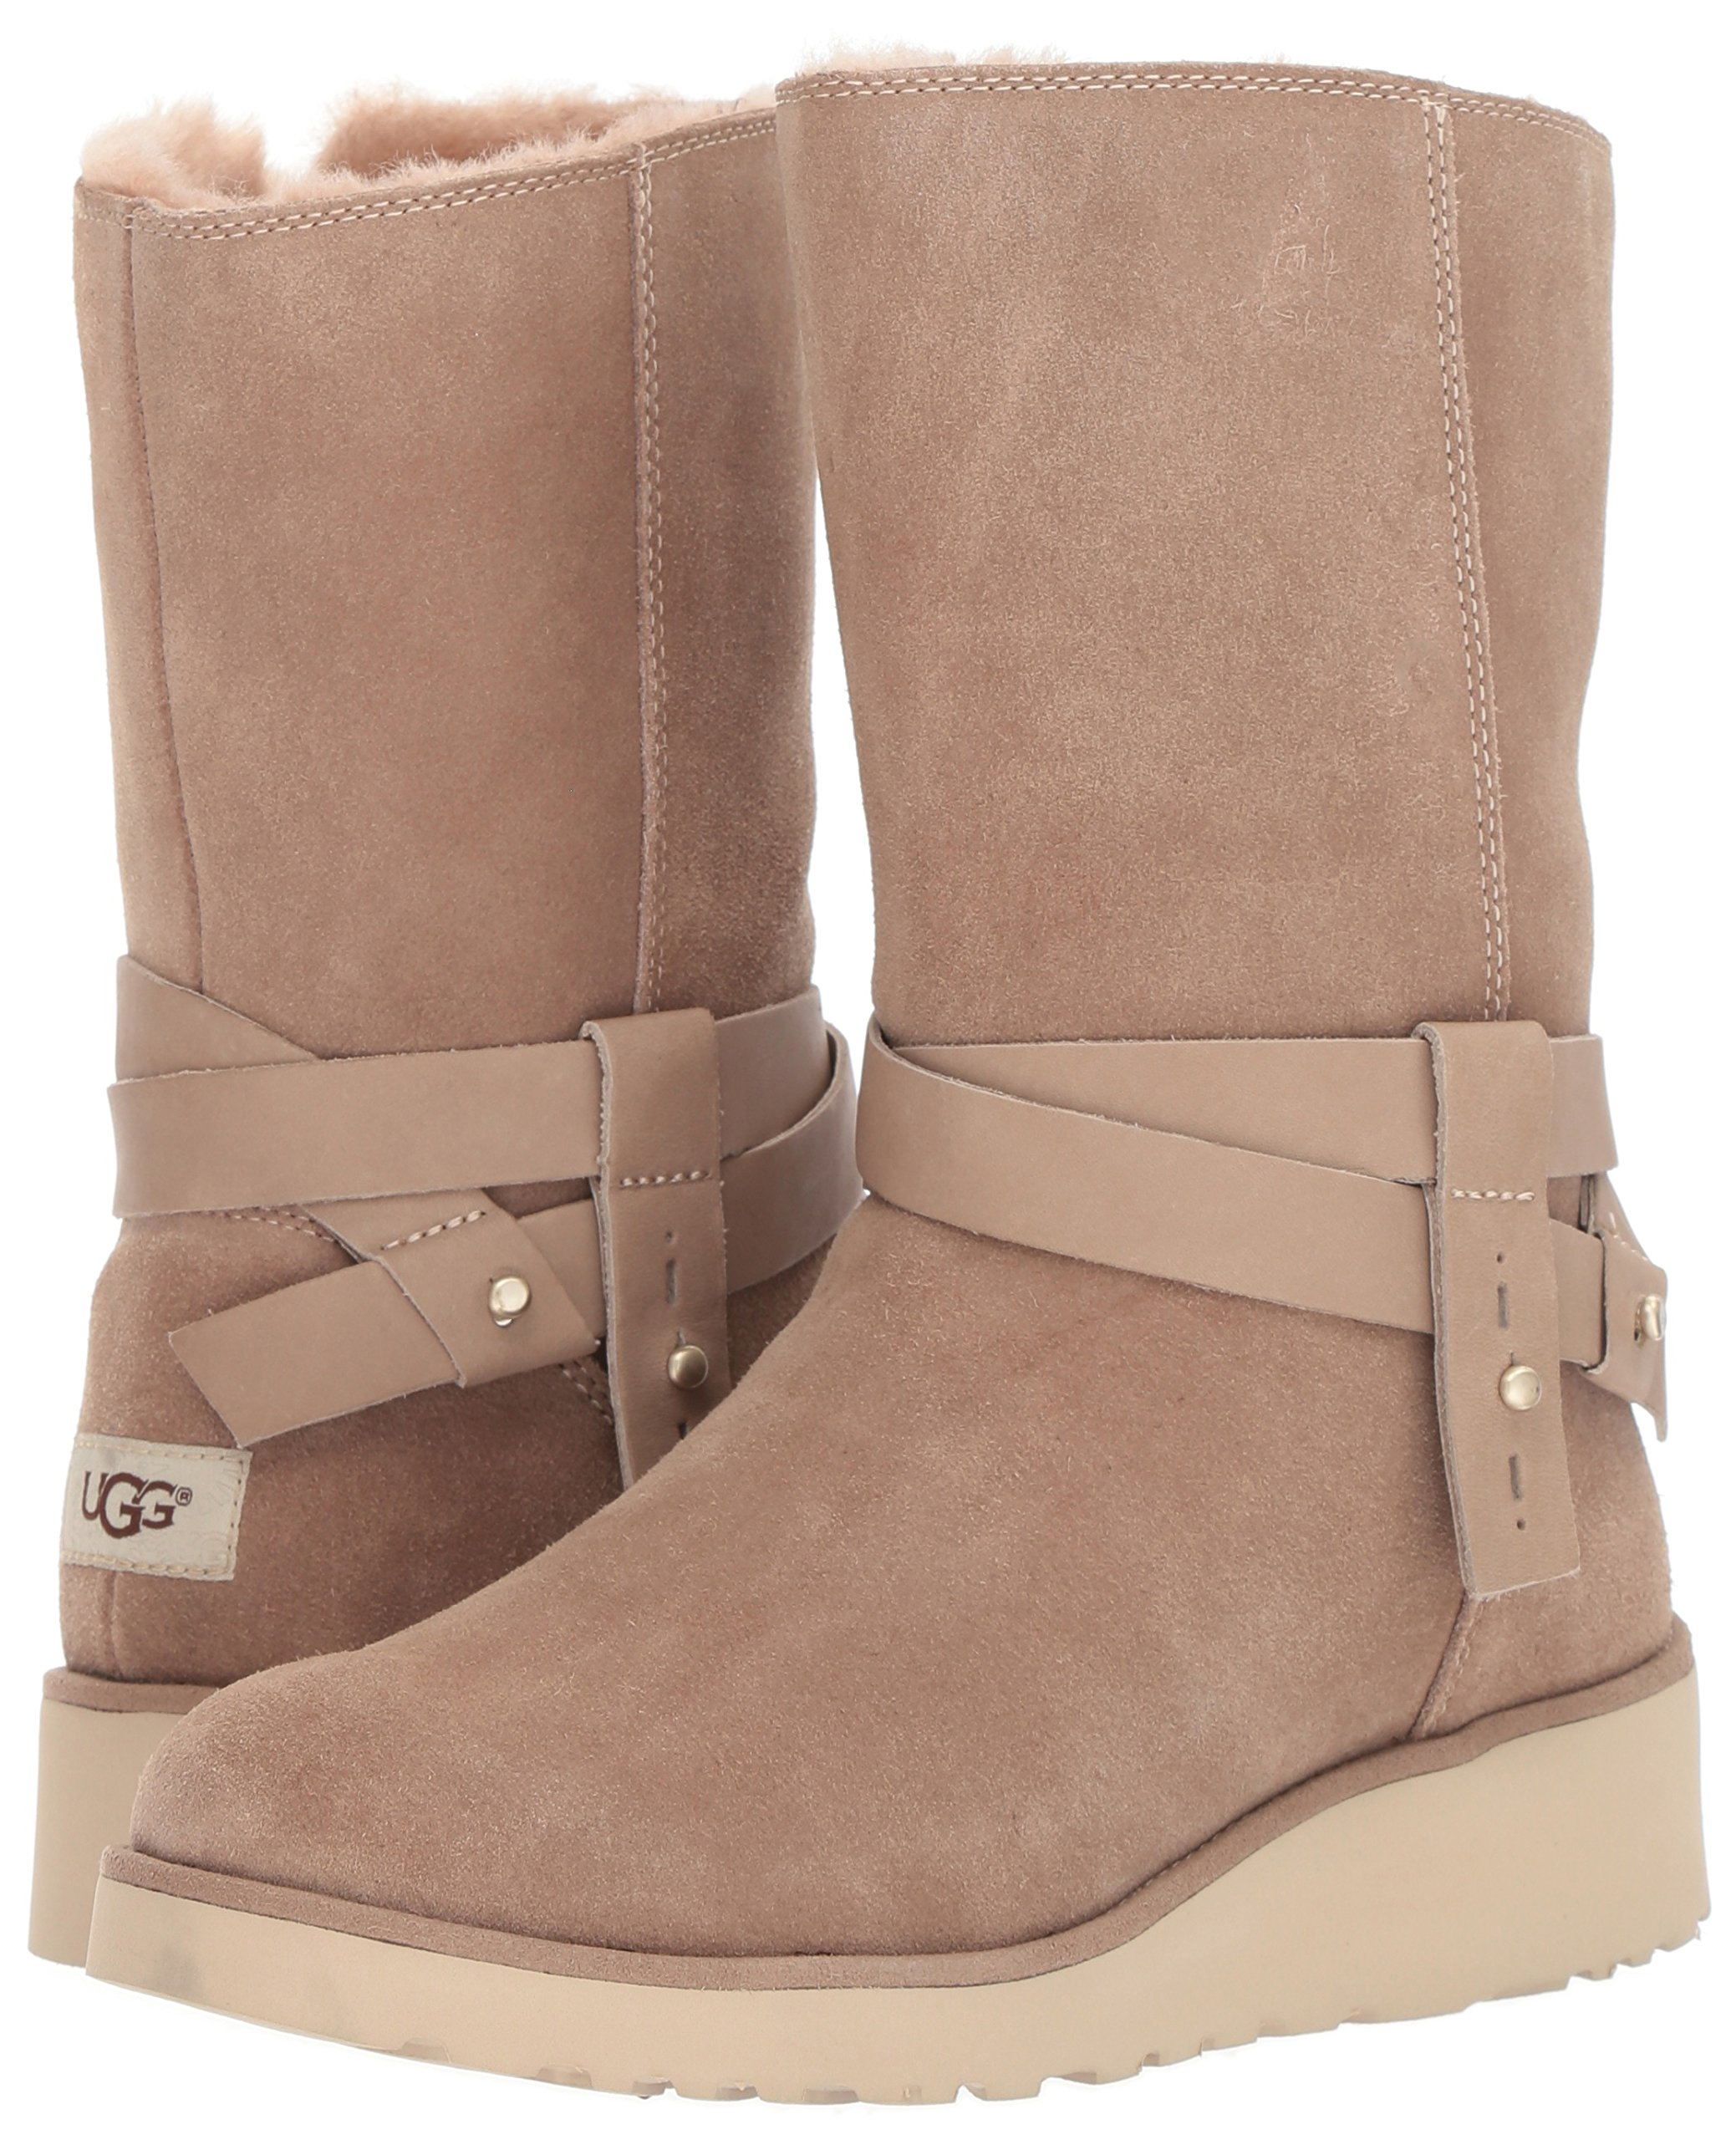 UGG Women's Aysel Winter Boot, Fawn, 7.5 M US by UGG (Image #6)